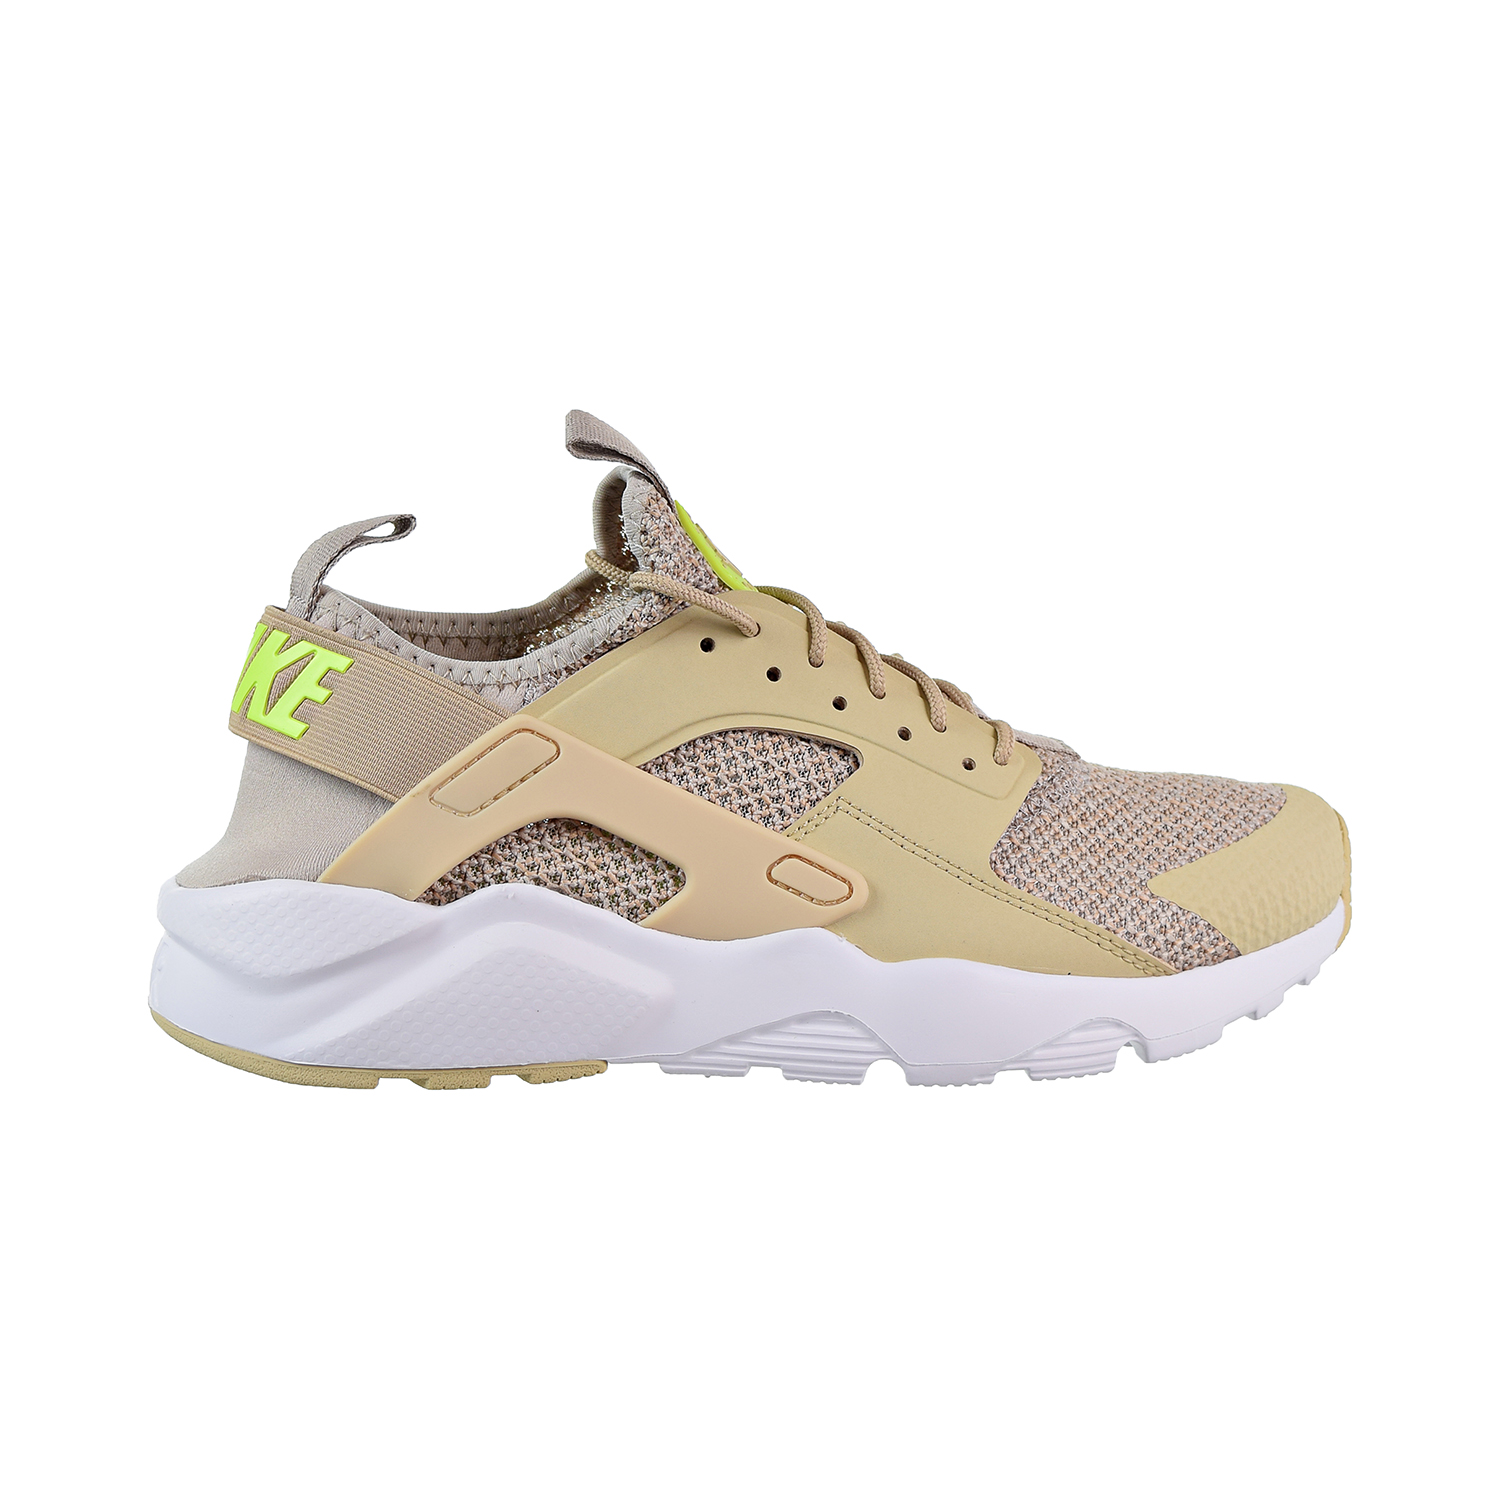 best service 0d811 0b635 Details about Nike Air Huarache Run Ultra SE Men s Shoes String Desert  Ore White 875841-201